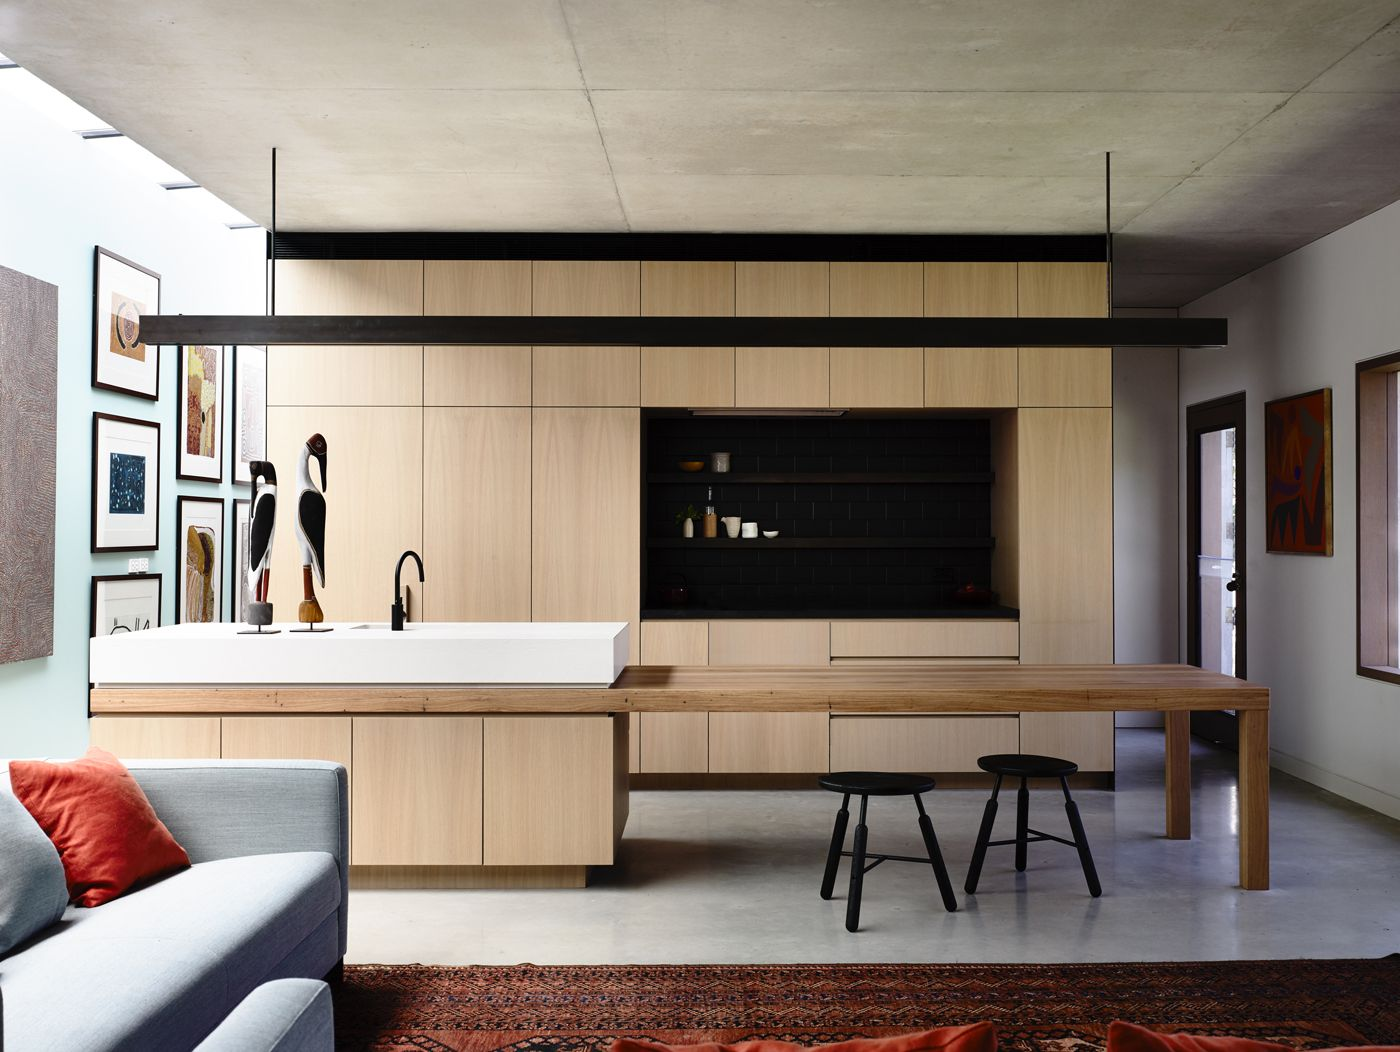 rob kennon architects / in situ house, toorak | k i t c h e n s ...